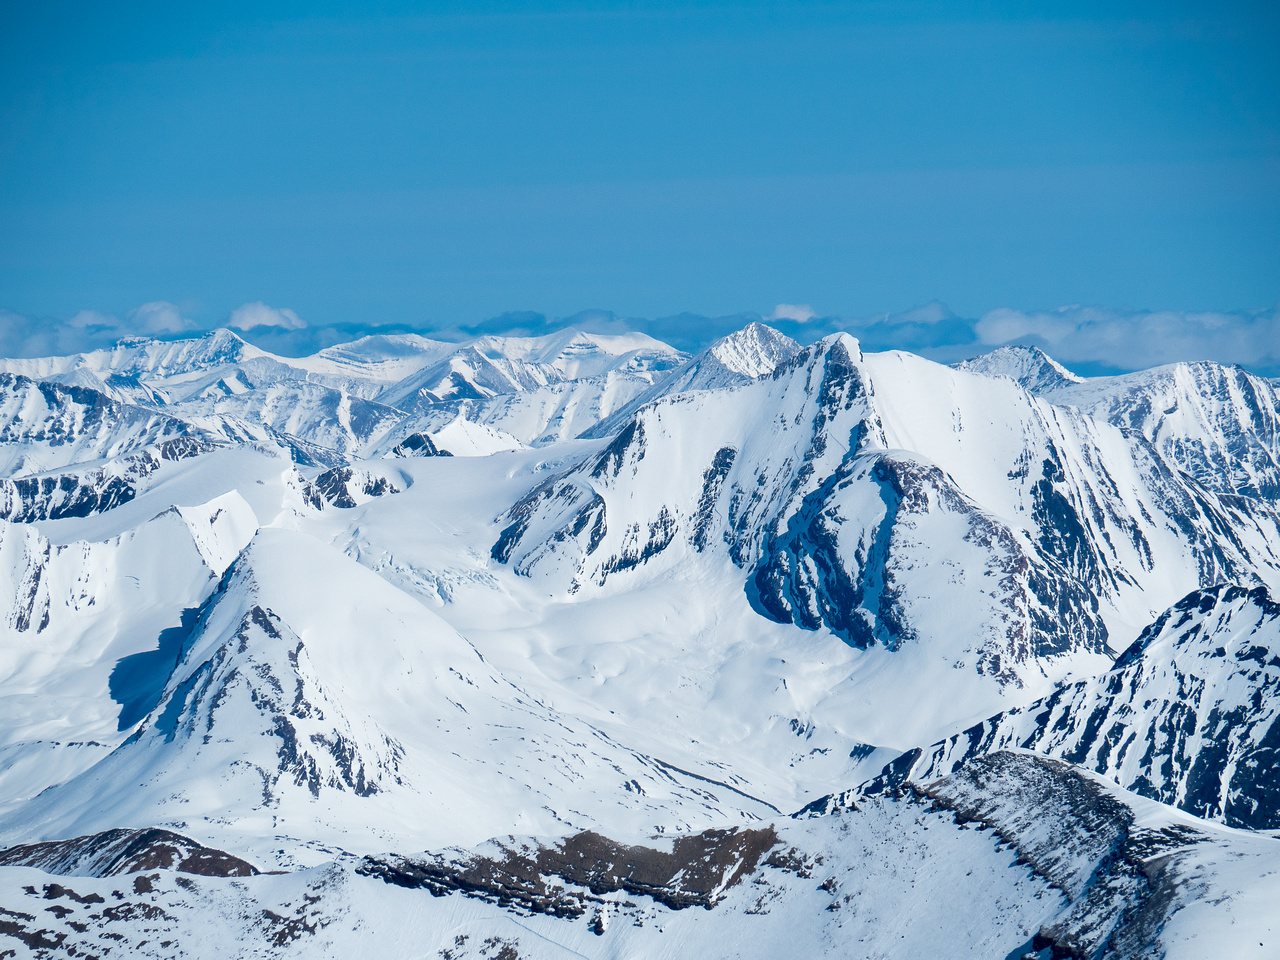 Calumet Peak soars over Moose Pass - part of the Moose River Route that I would like to hike some day.